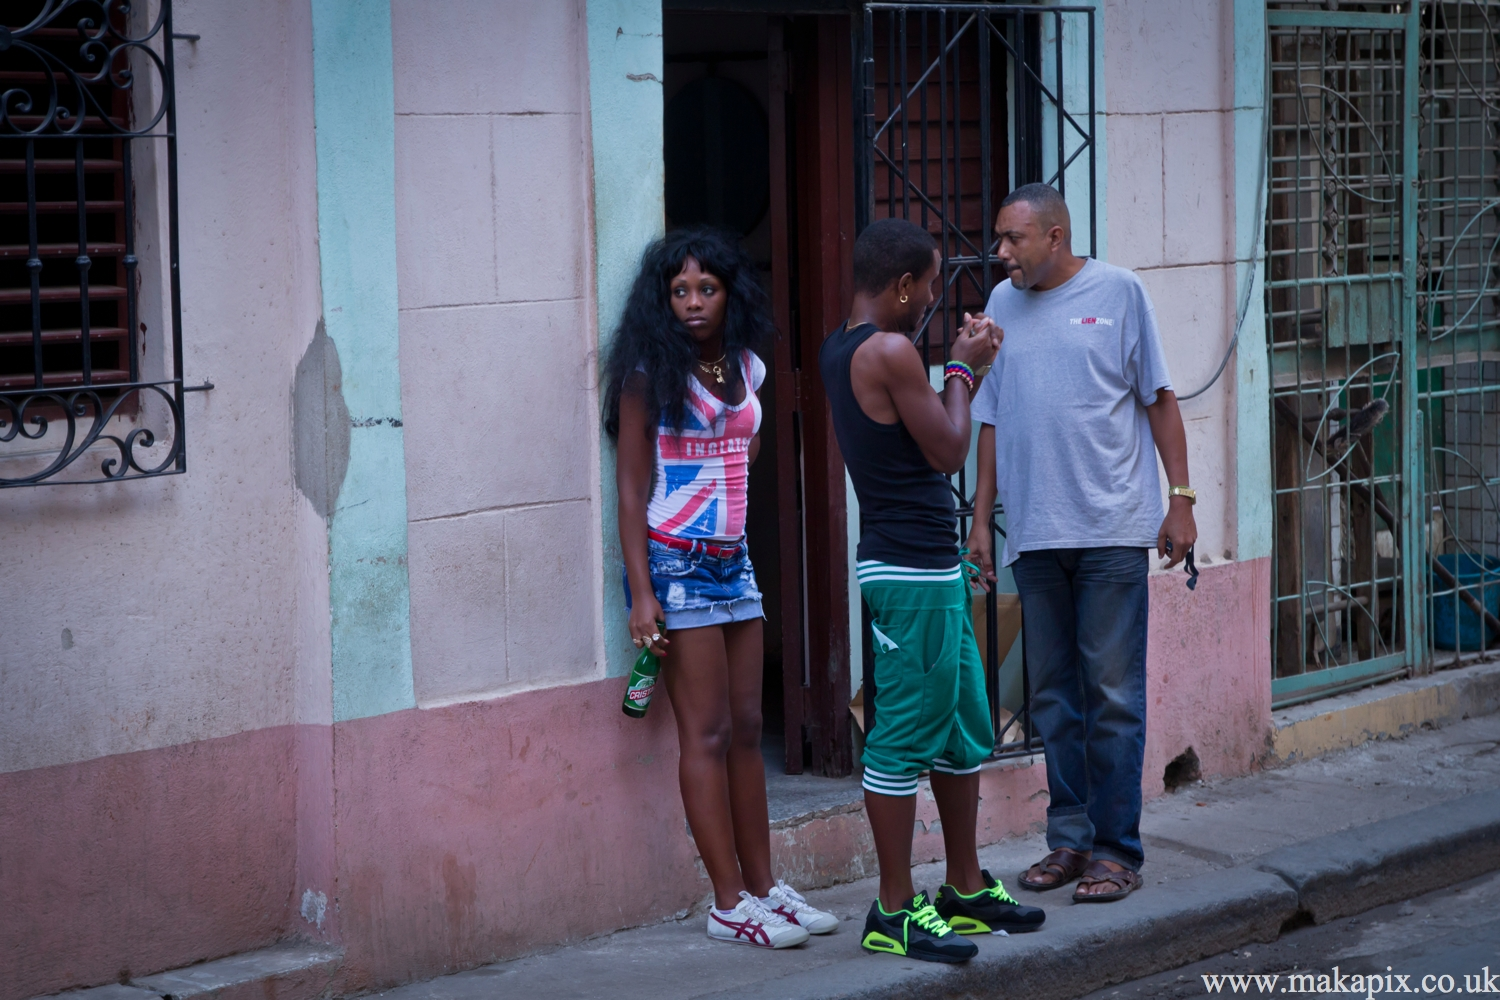 Cuban people